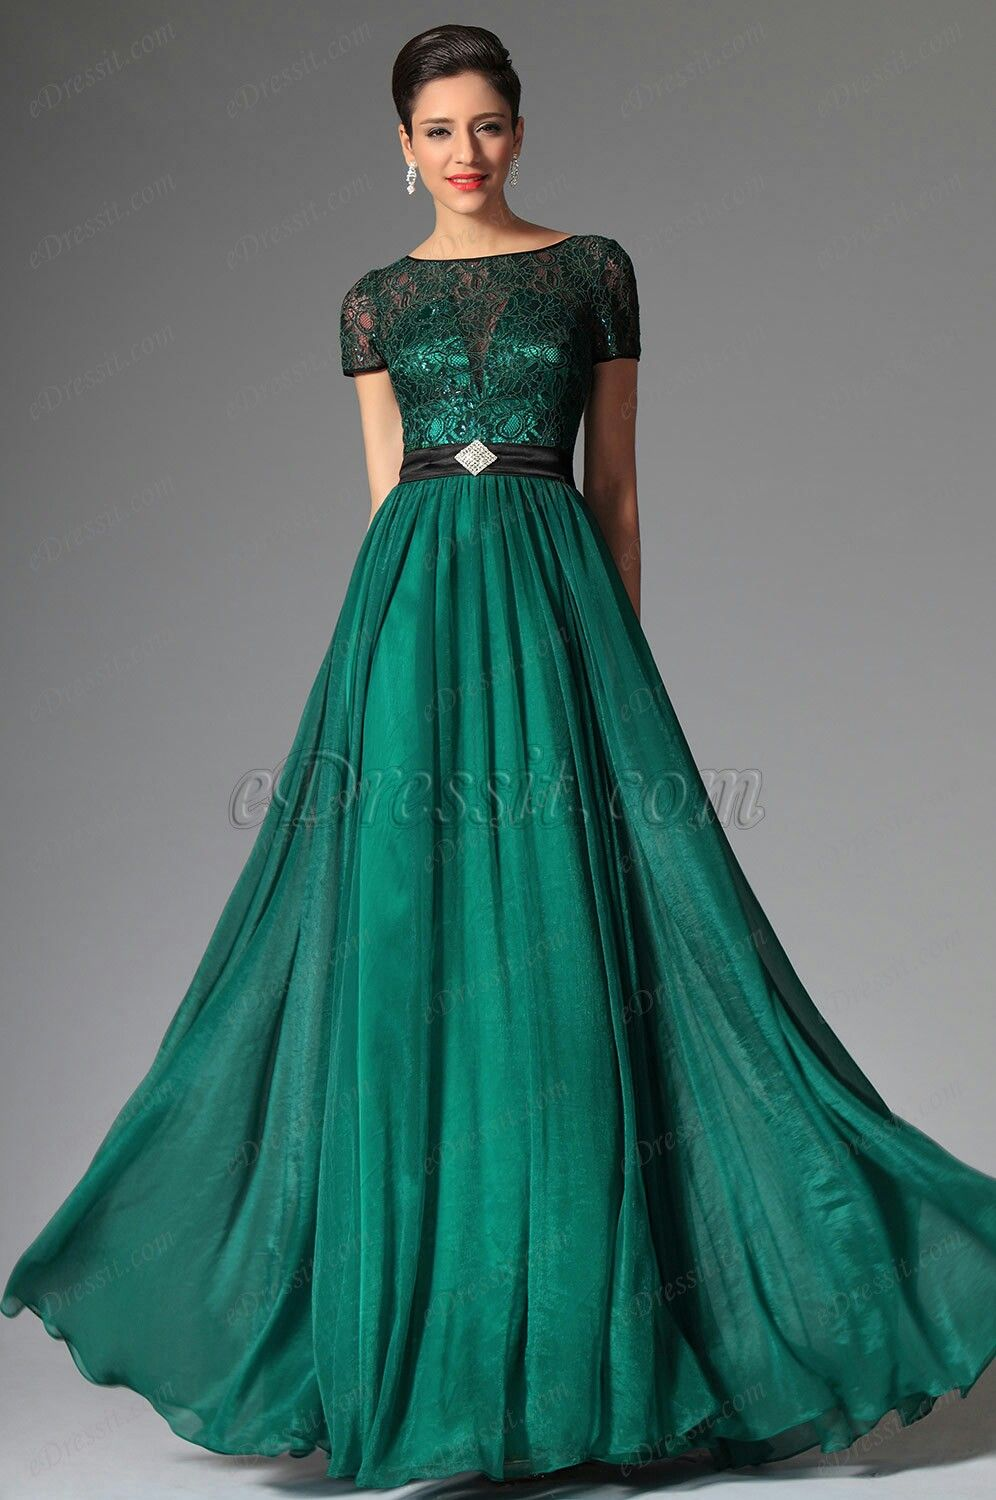 Pin By Diane Wamunza On Dress For Wedding Green Evening Gowns Teal Bridesmaid Dresses Uk Green Prom Dress [ 1500 x 996 Pixel ]